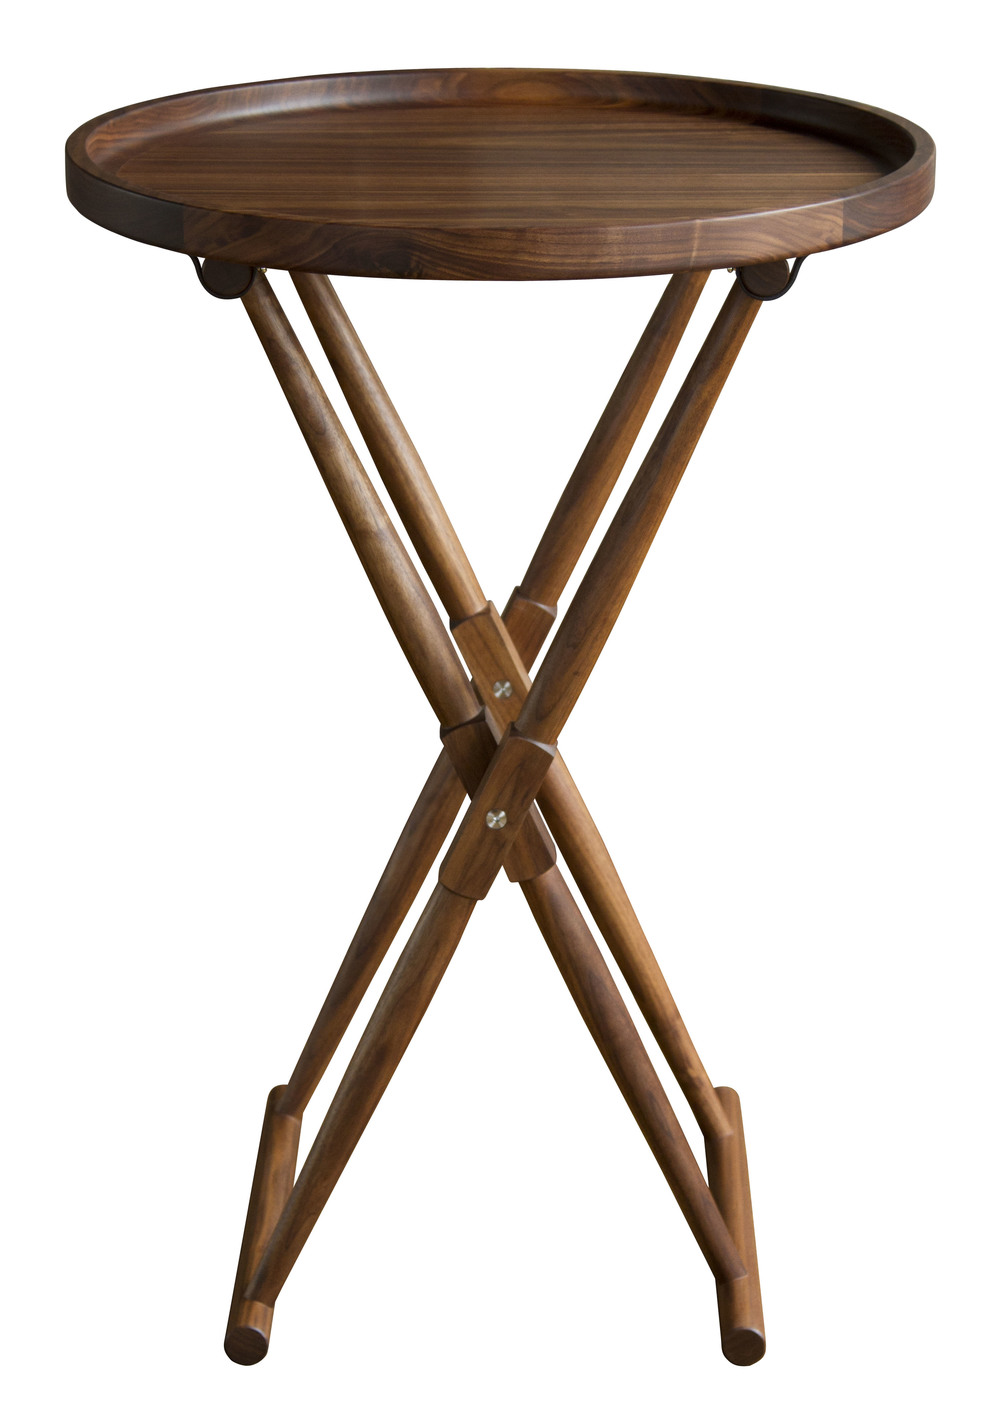 Matthiessen Round Tray Table - Bar Height